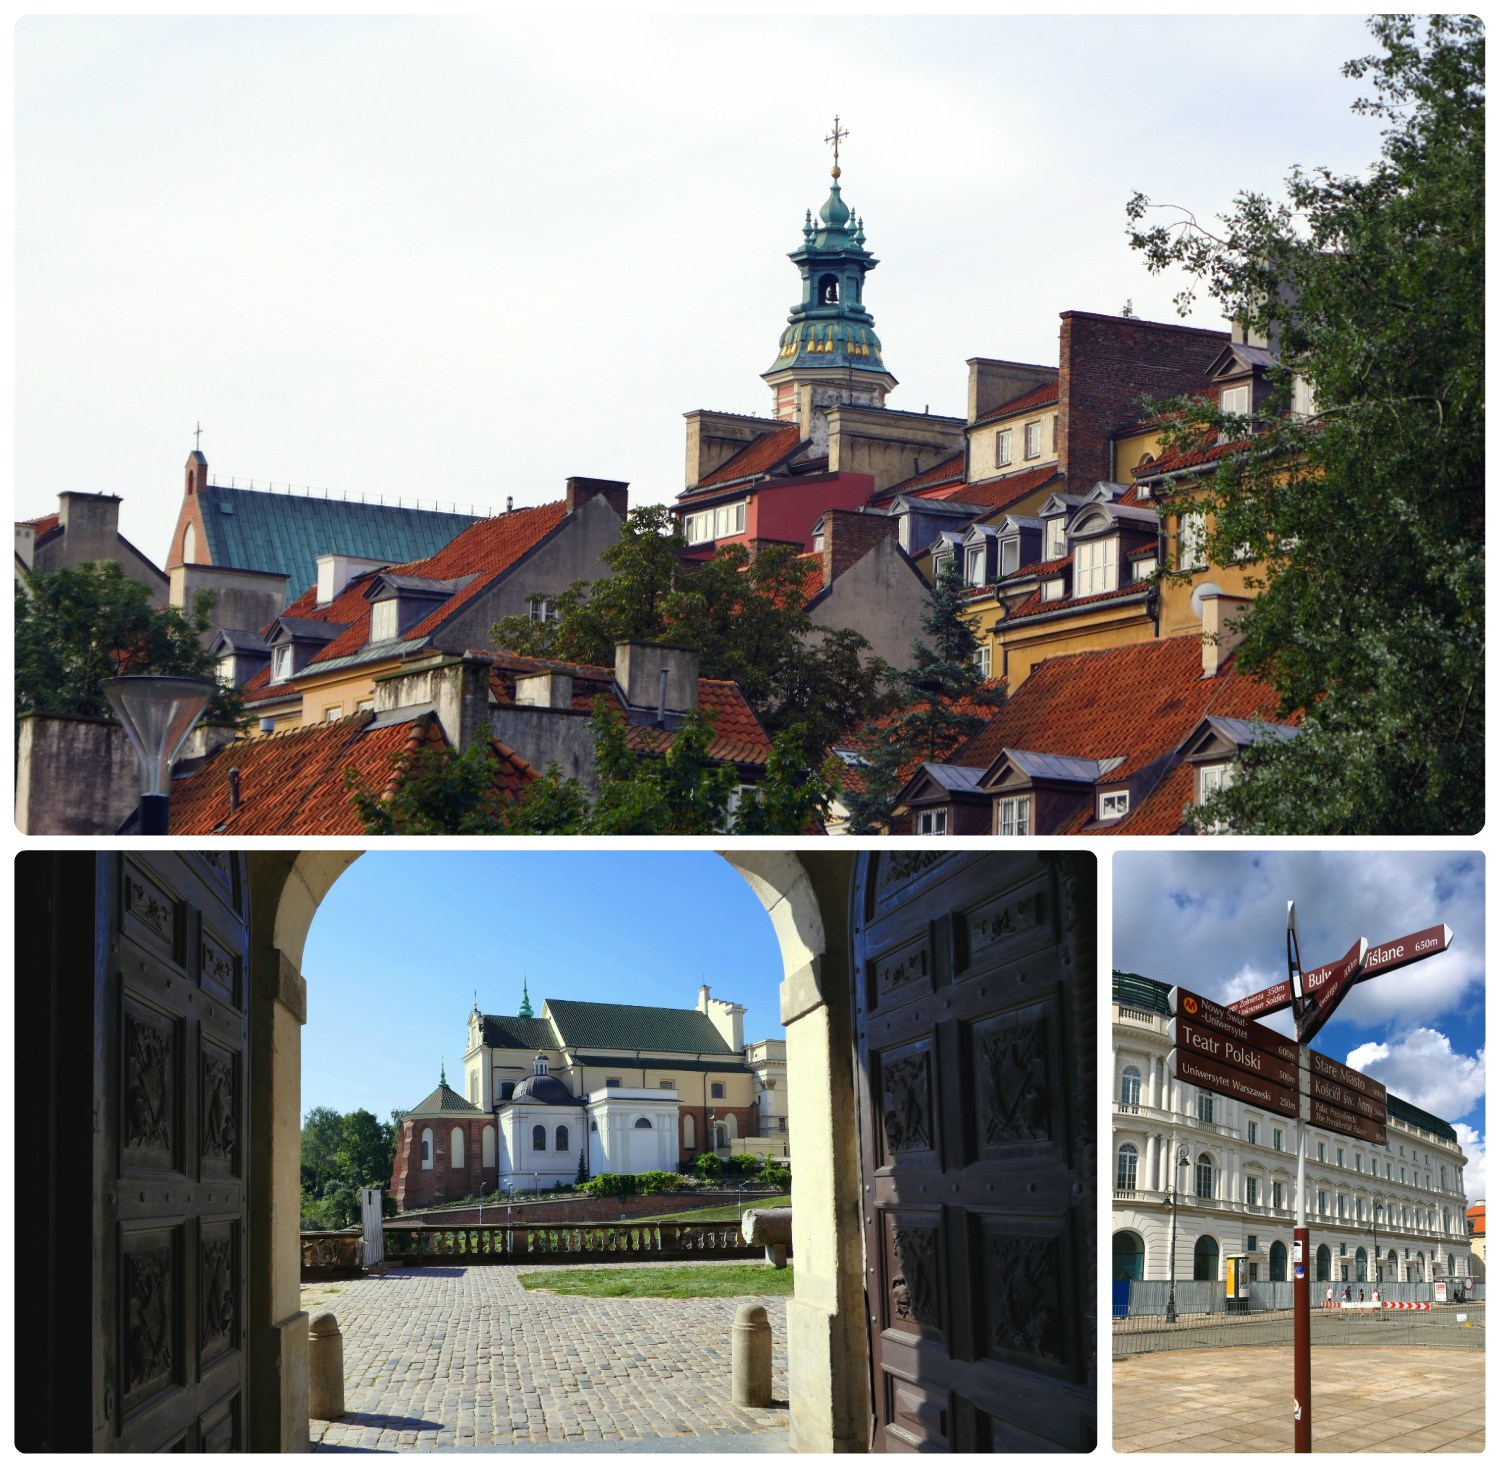 The beauty of Old town Warsaw is unmistakeable!